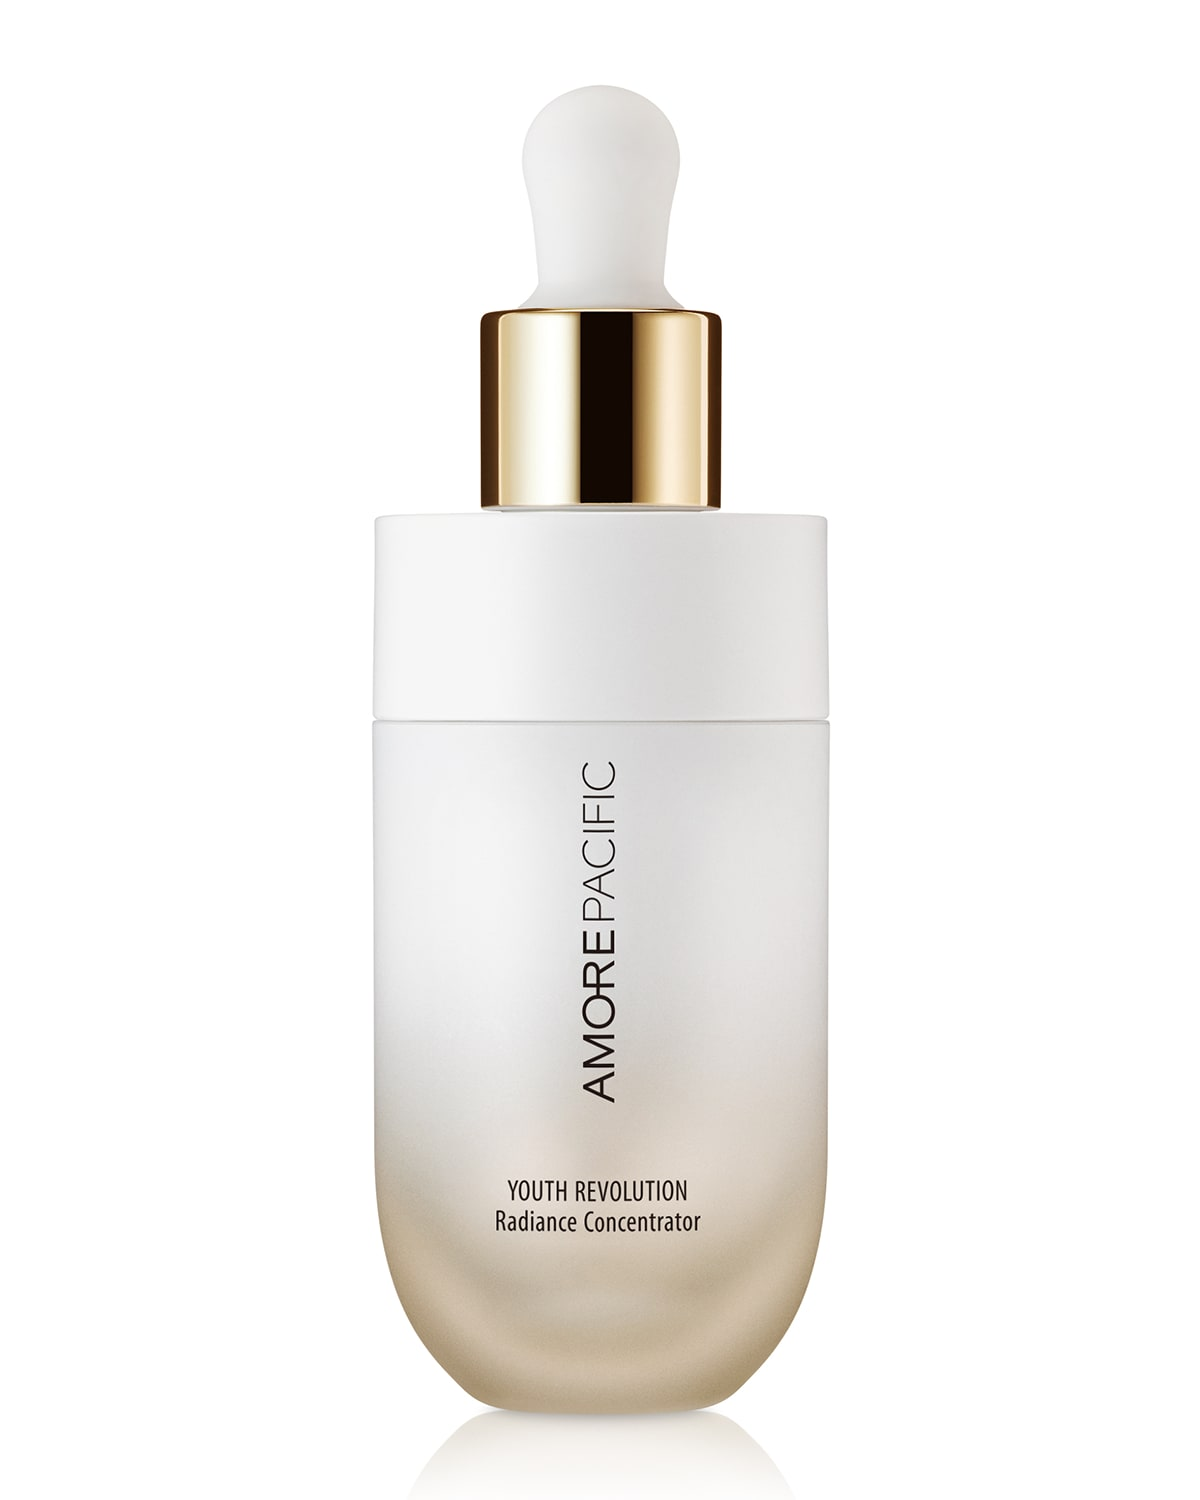 1 oz. YOUTH REVOLUTION Radiance Concentrator